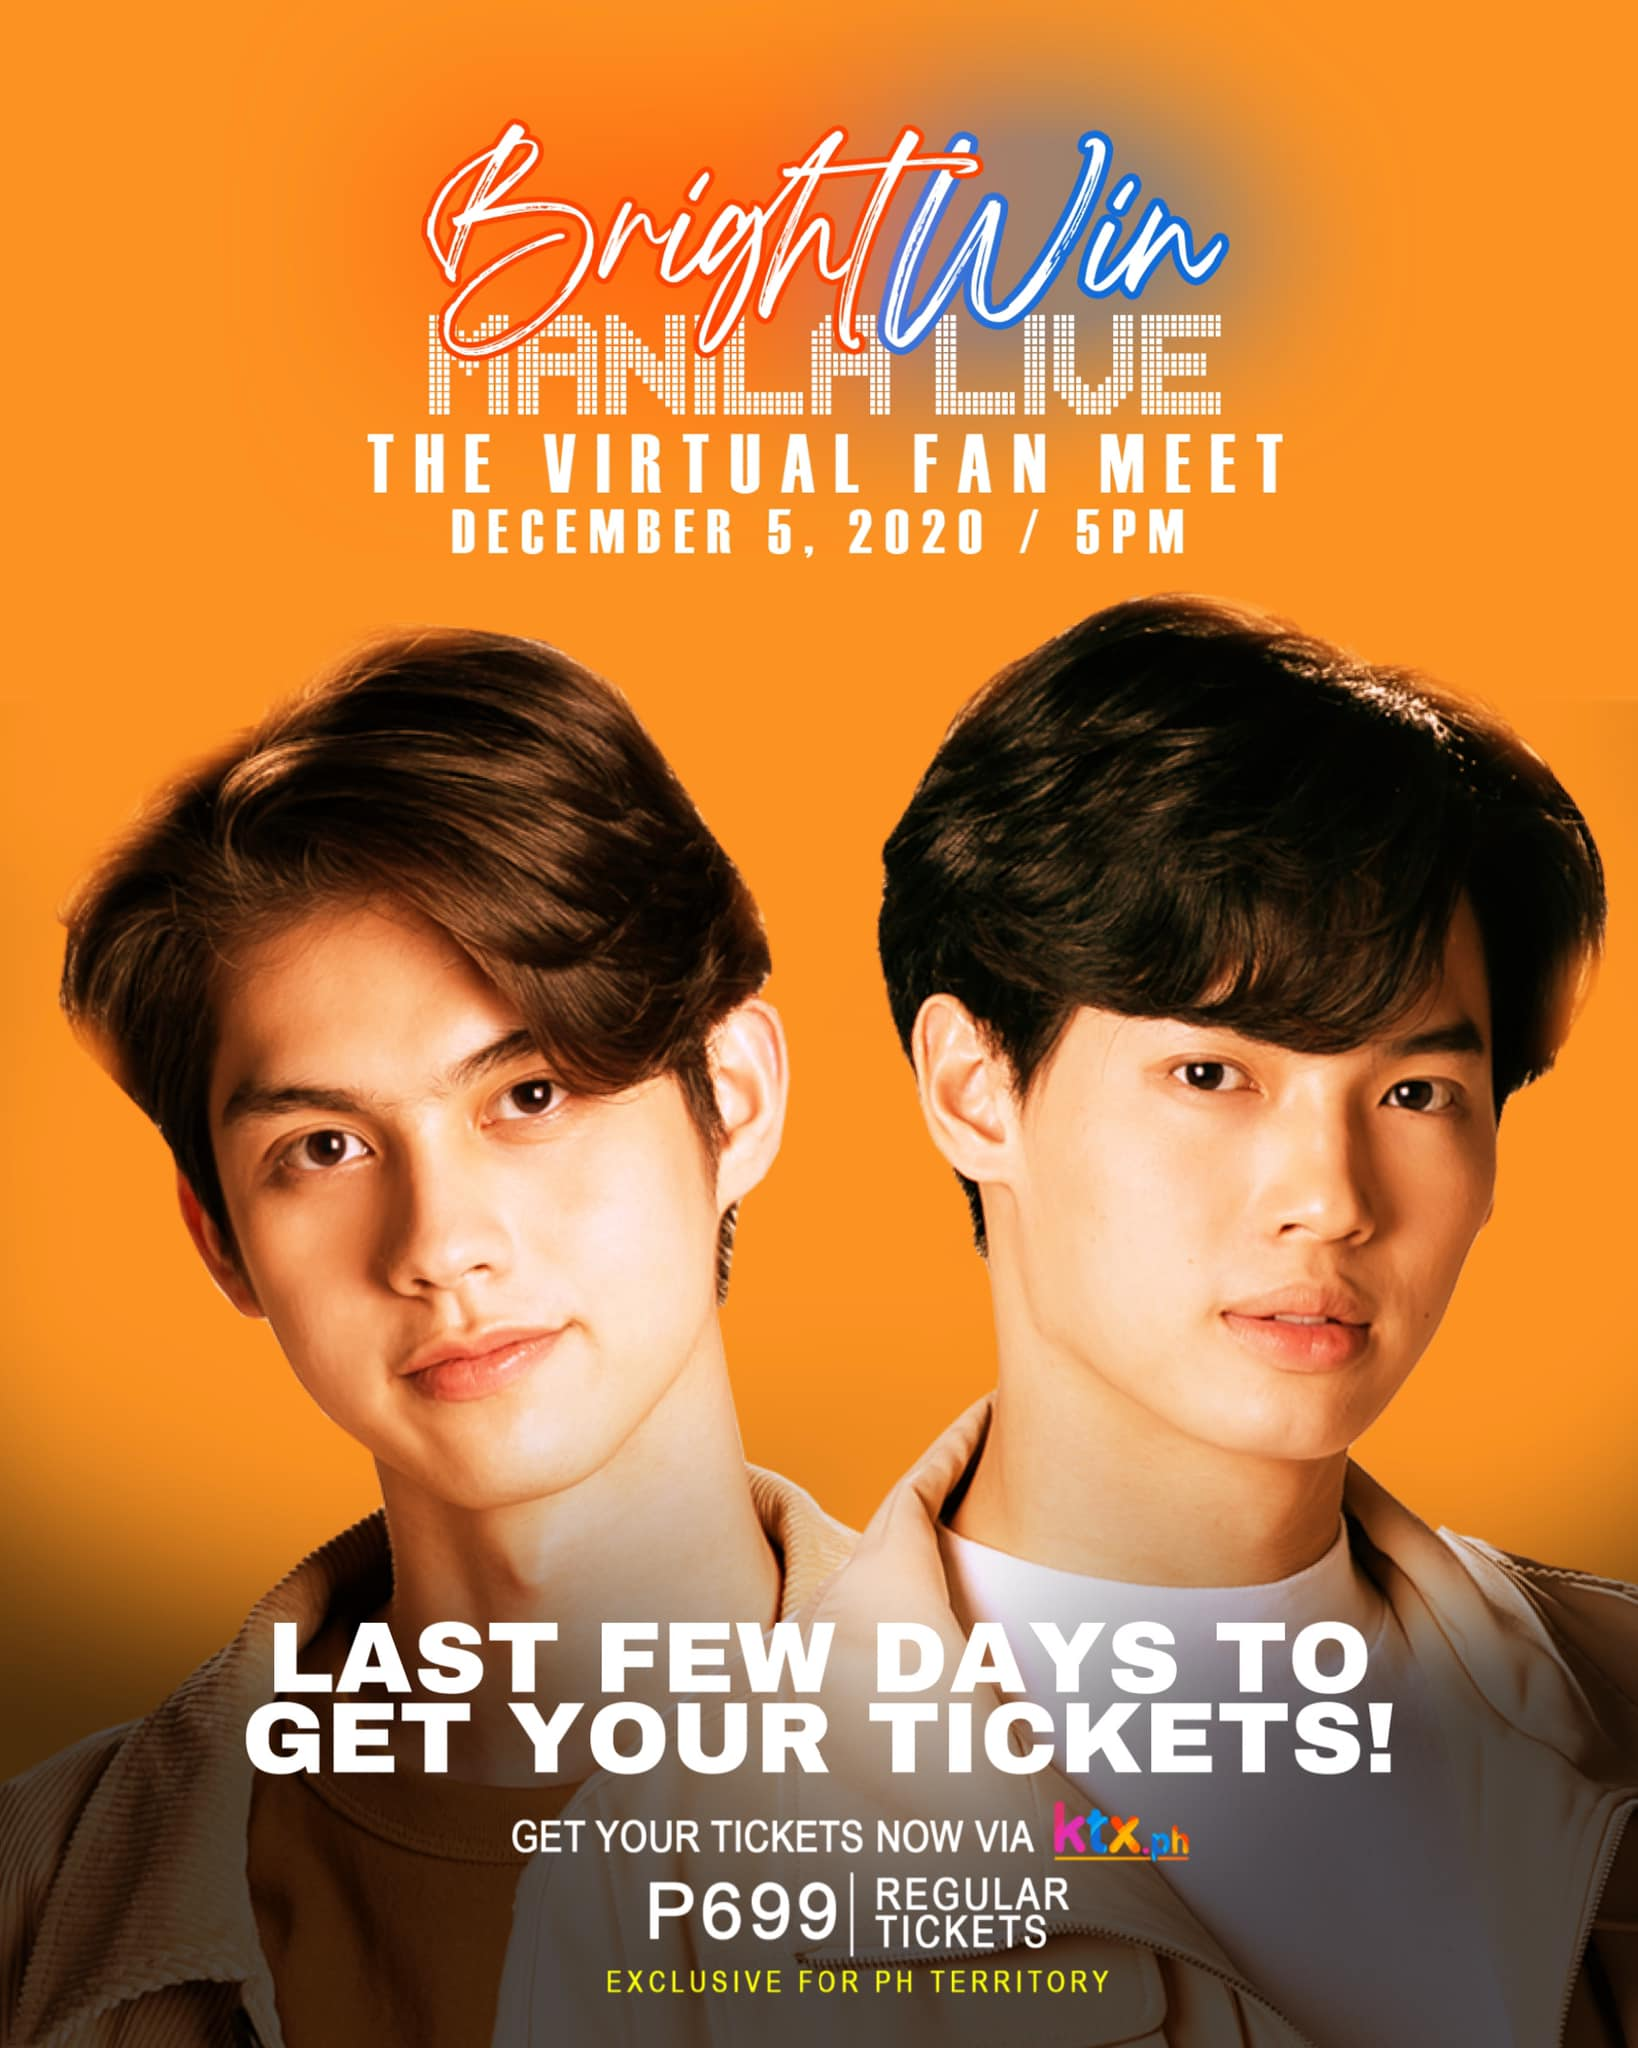 Get your tickets for the virtual fan meet on ktx ph